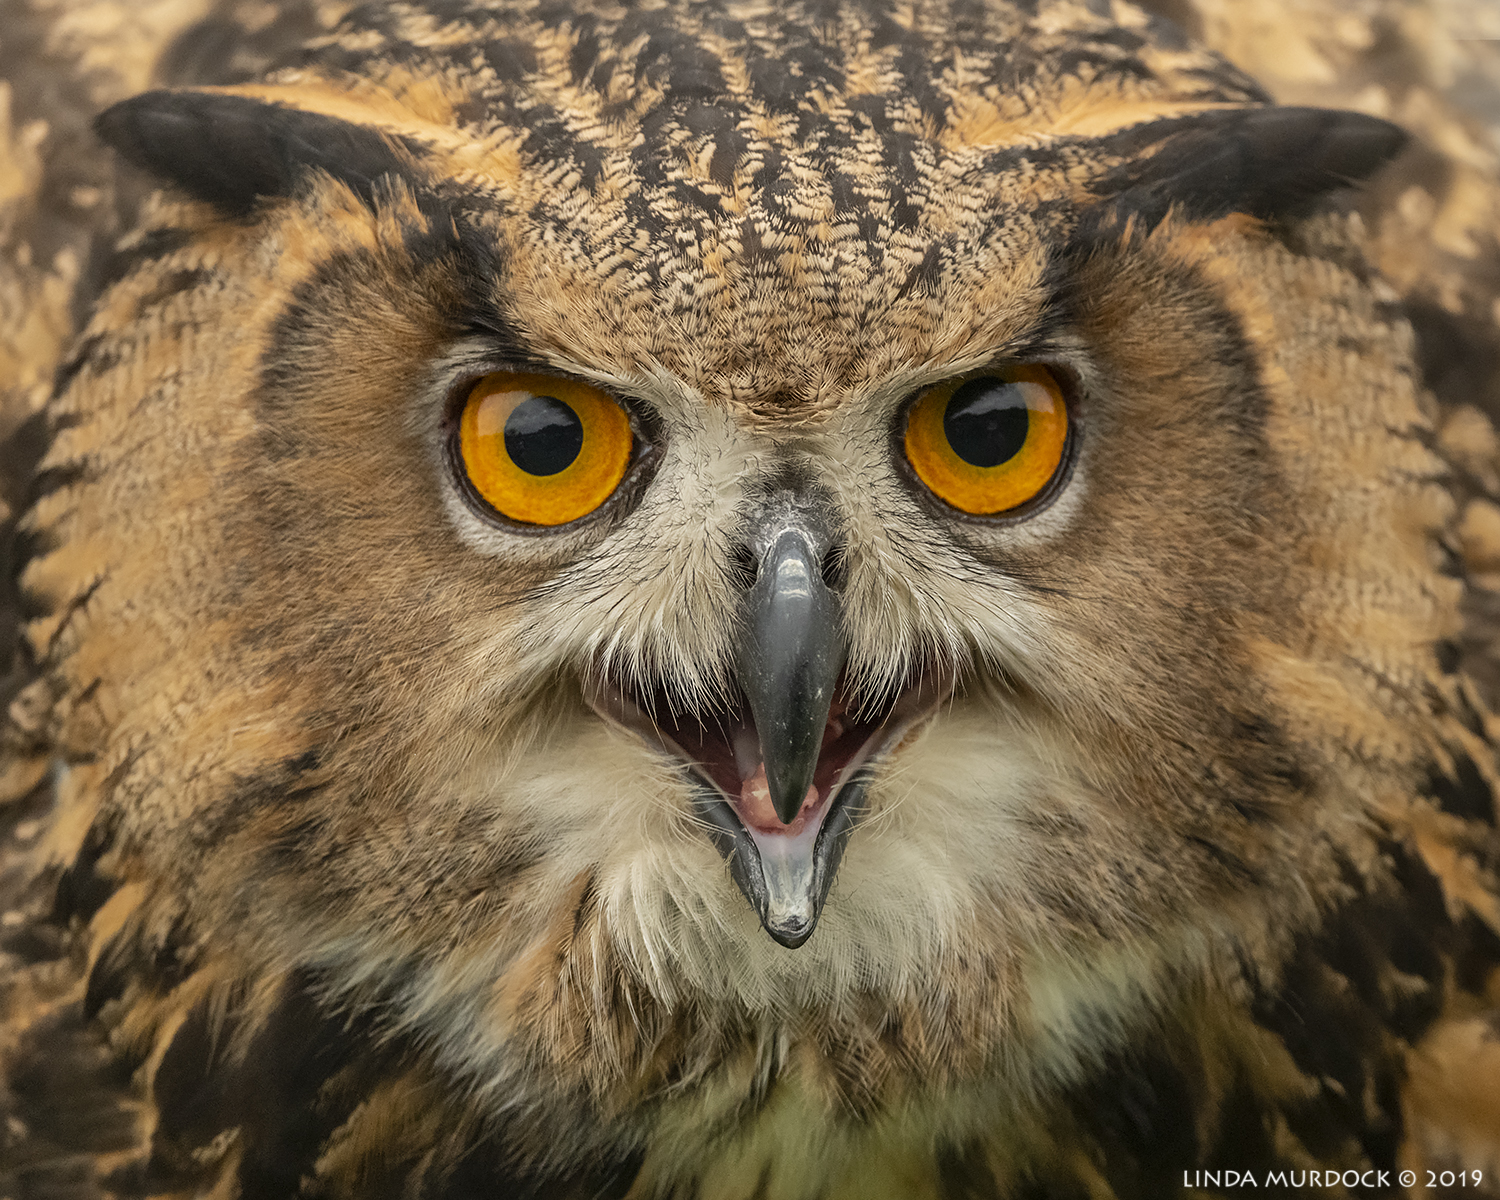 Eurasian Eagle-owl up really close Nikon D850 with Nikkor 500 f/5.6 PF VR ~ 1/2000 sec f/6.3 ISO 2000